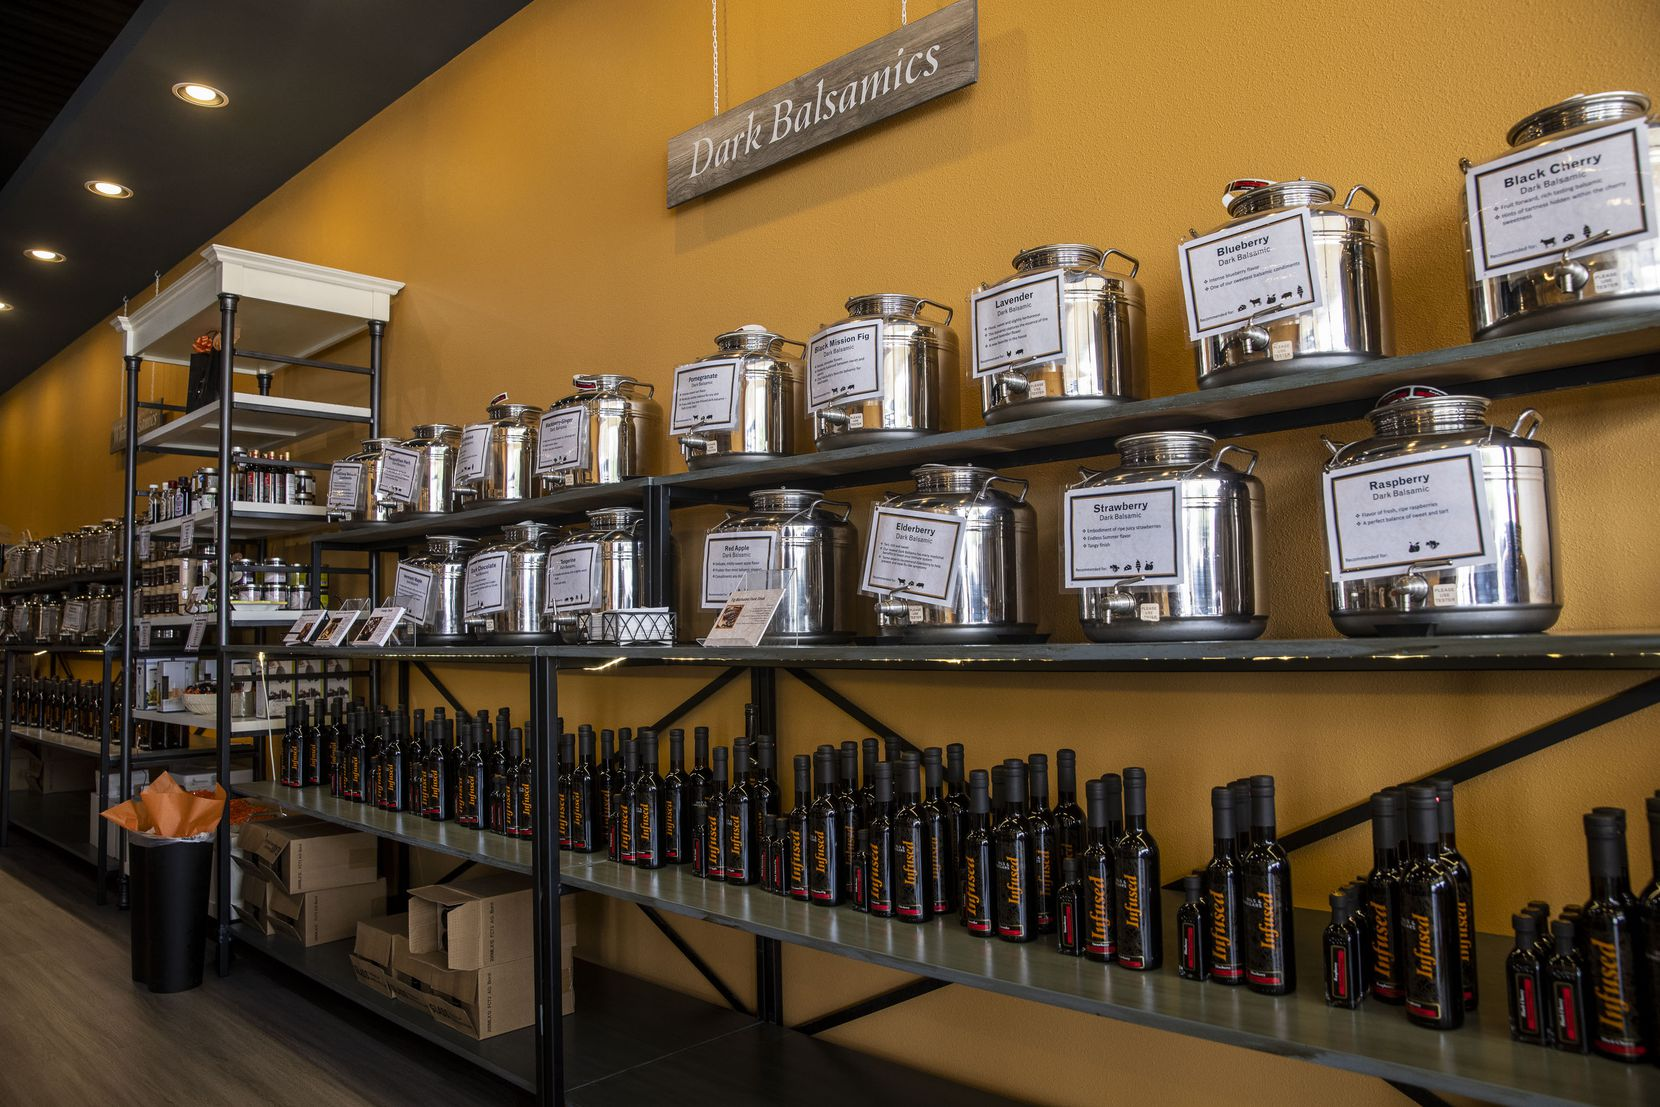 The sampling section of infused dark basalmic vinegars at Infused Oils and Vinegars.